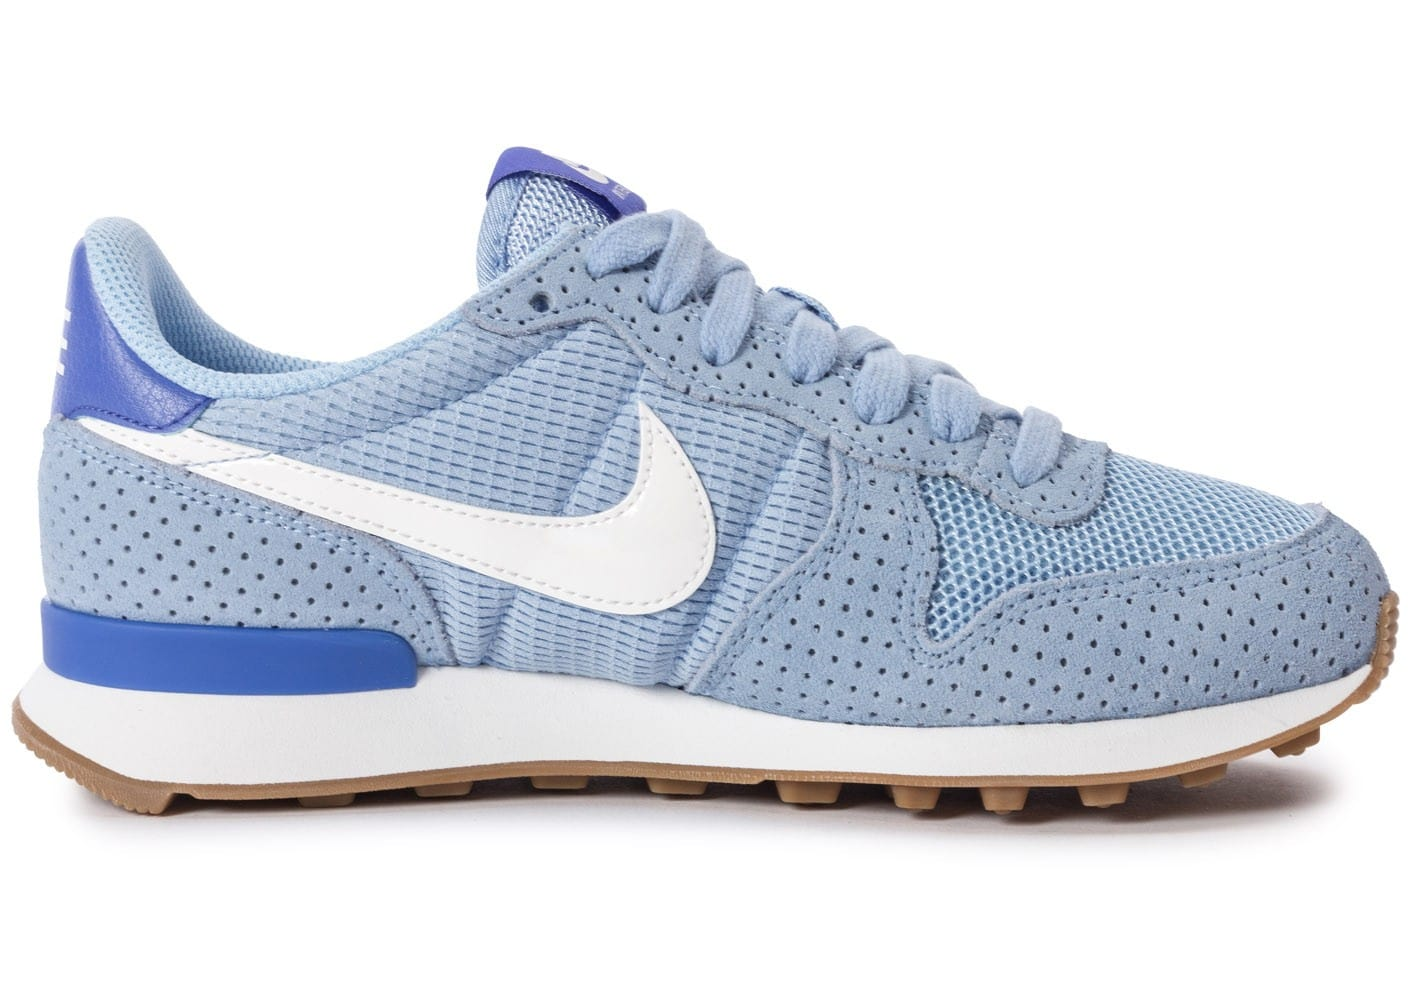 detailed look 2d57a 087be low cost chaussures nike internationalist wolf grey vue dessous 0f681 95af9